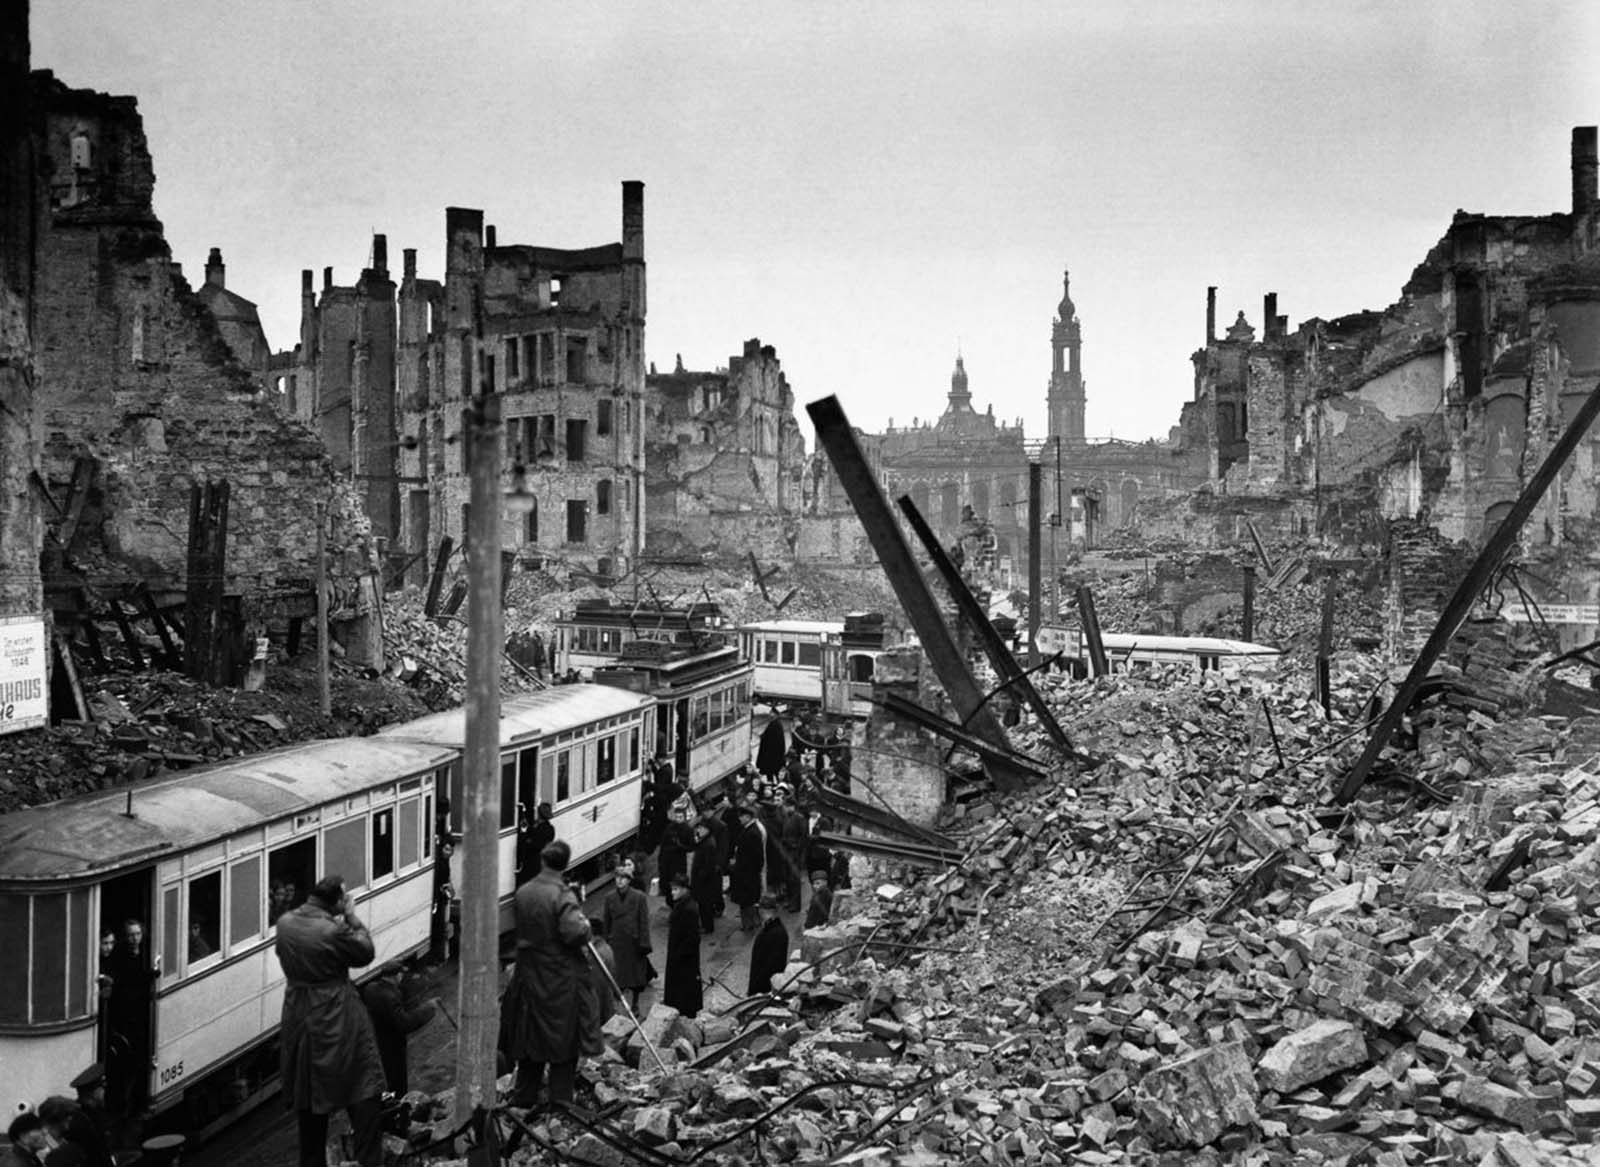 Residents ride trams through the rubble of the city. 1946.